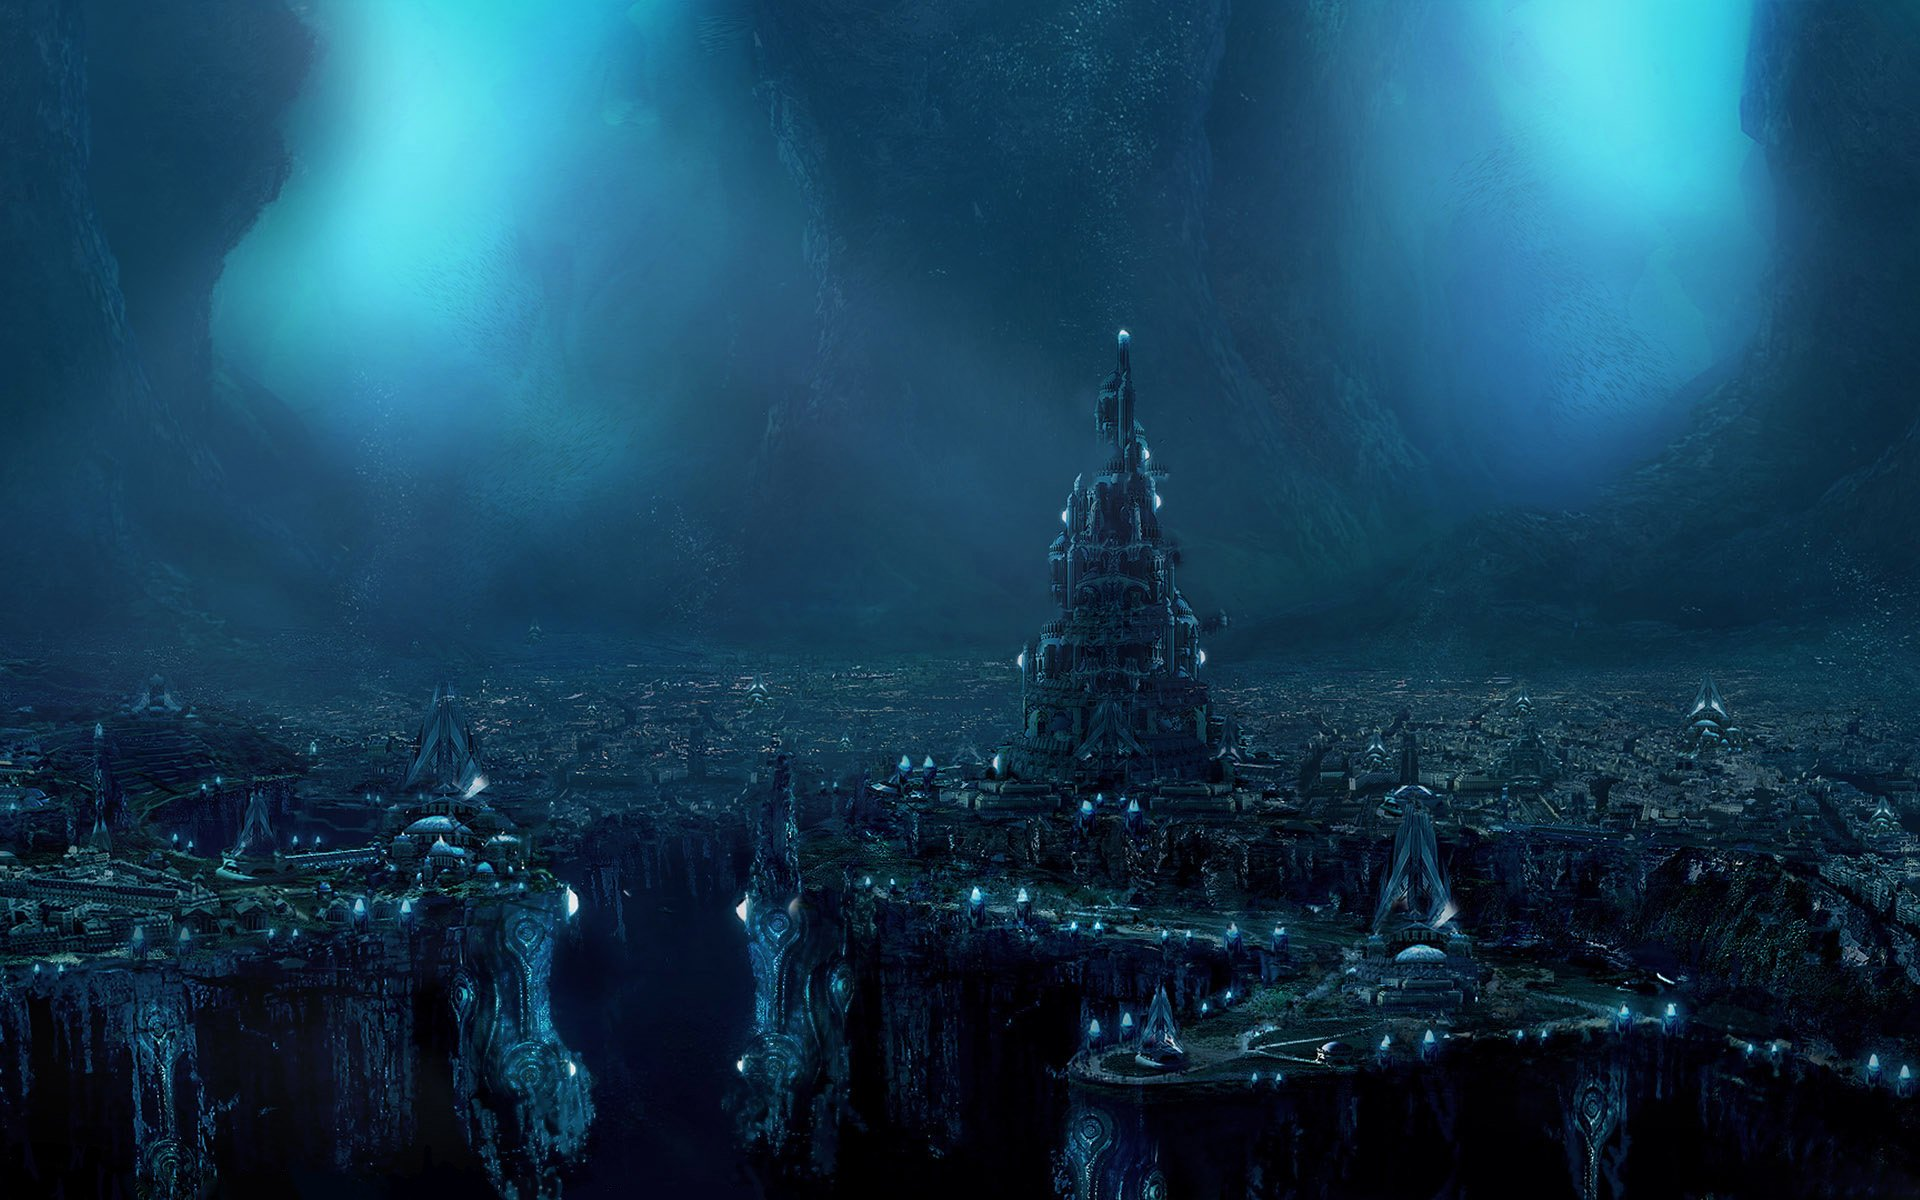 Sci Fi - City  Dark Atlantis Landscape Underground Fantasy Wallpaper